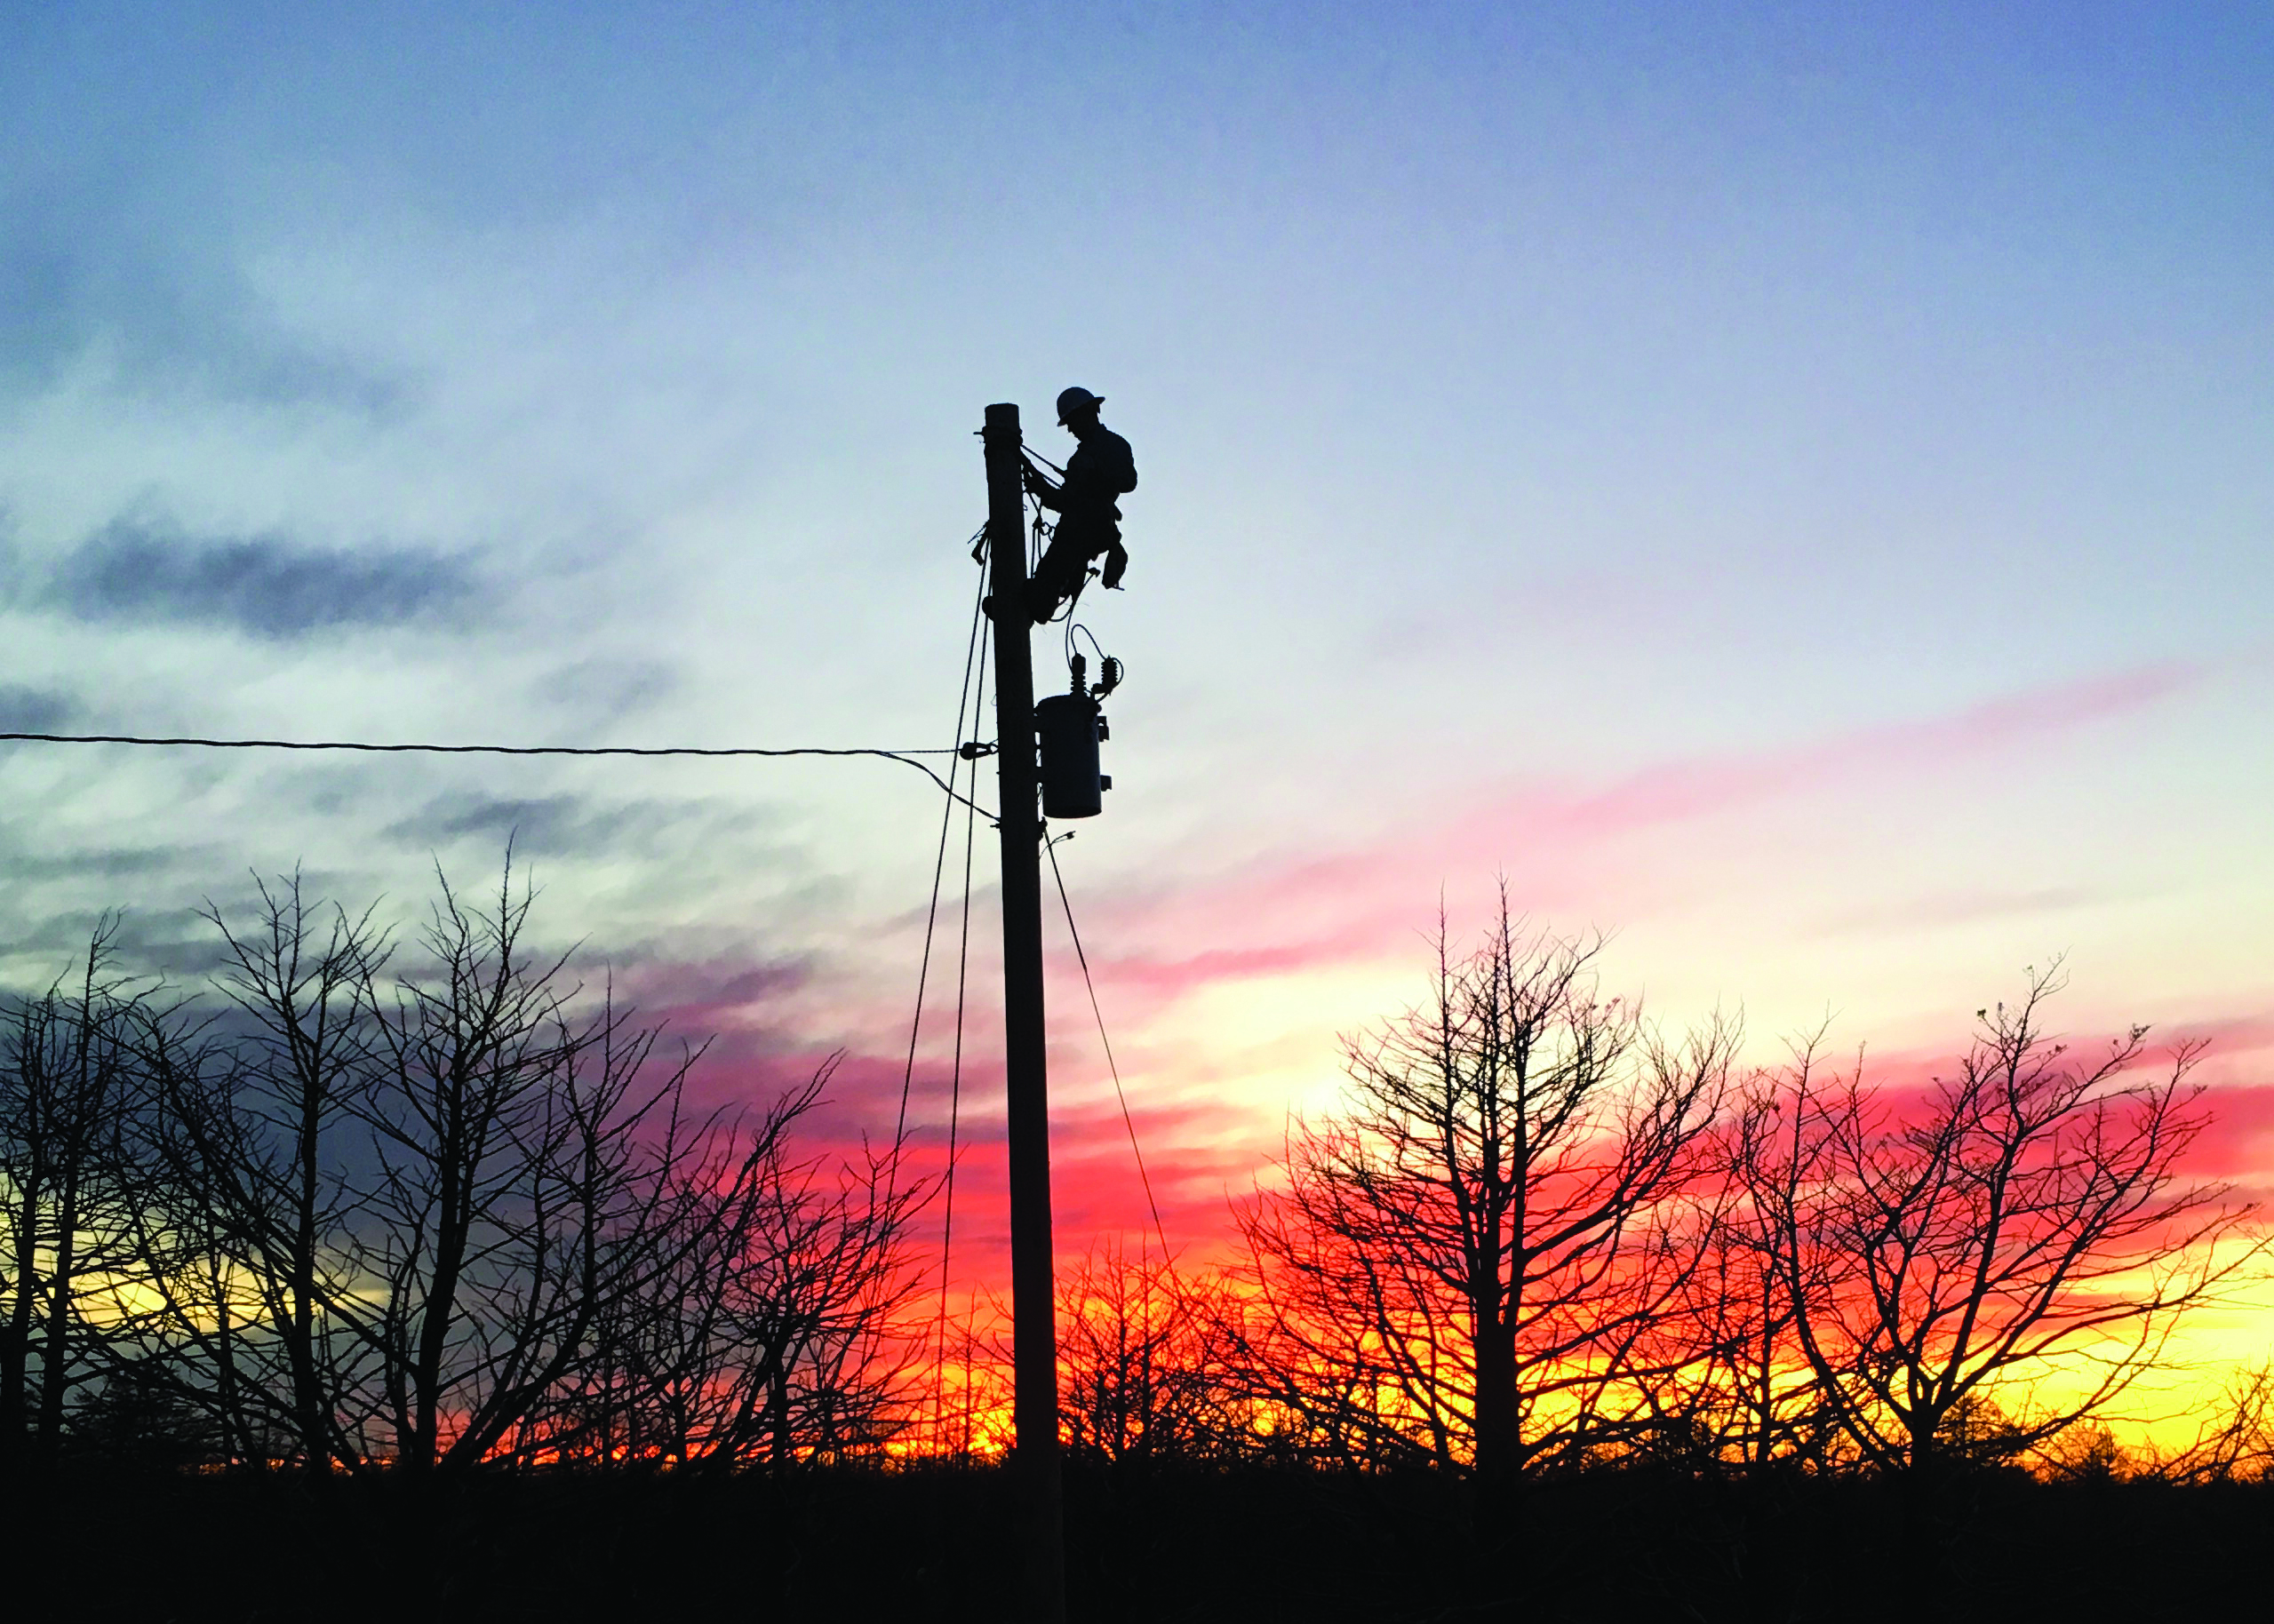 Linemen climbing a pole at sunrise